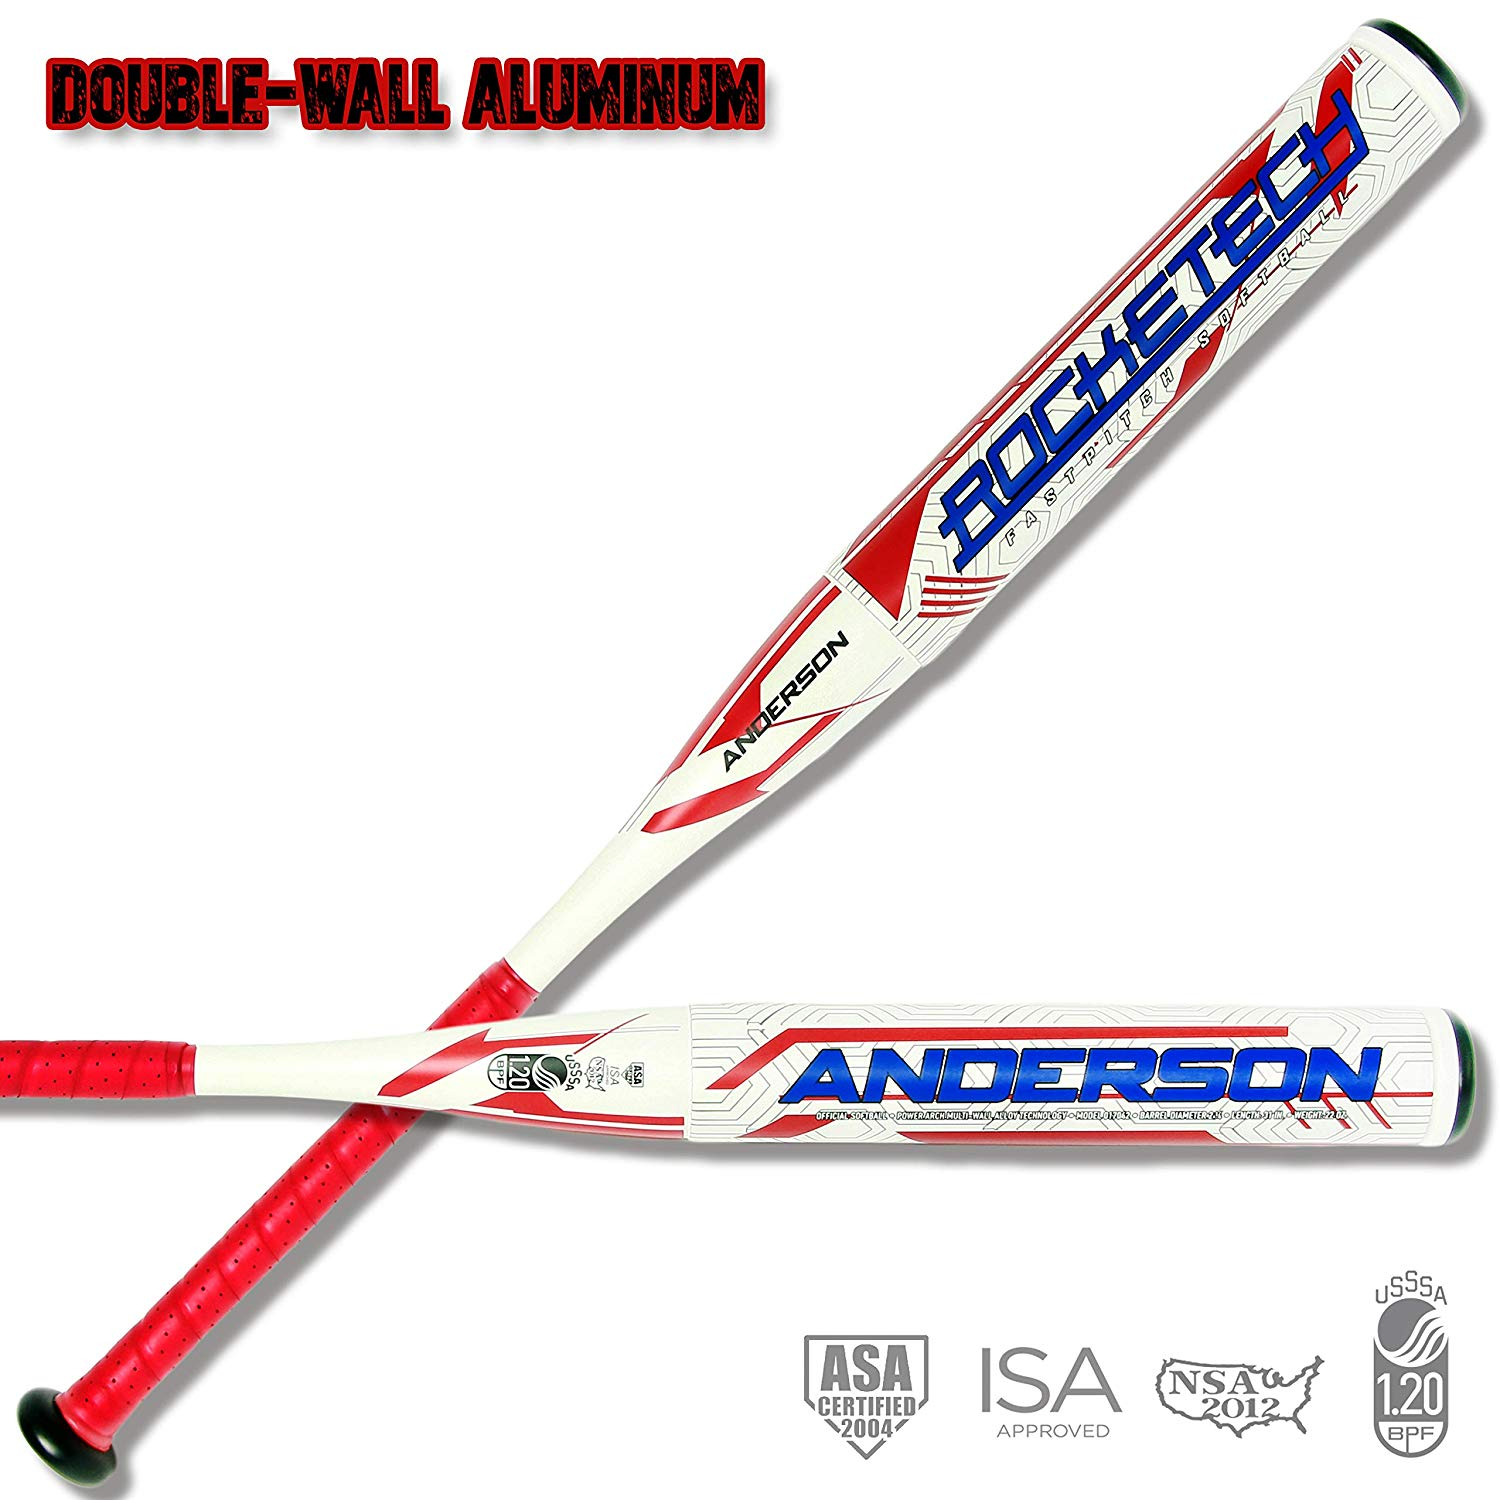 anderson-rocketech-9-double-wall-fastpitch-softball-bat-31-inch-22-oz 017042-3122  874147009512 `-9 Drop Weight End Loaded for more POWER guaranteed! Approved By